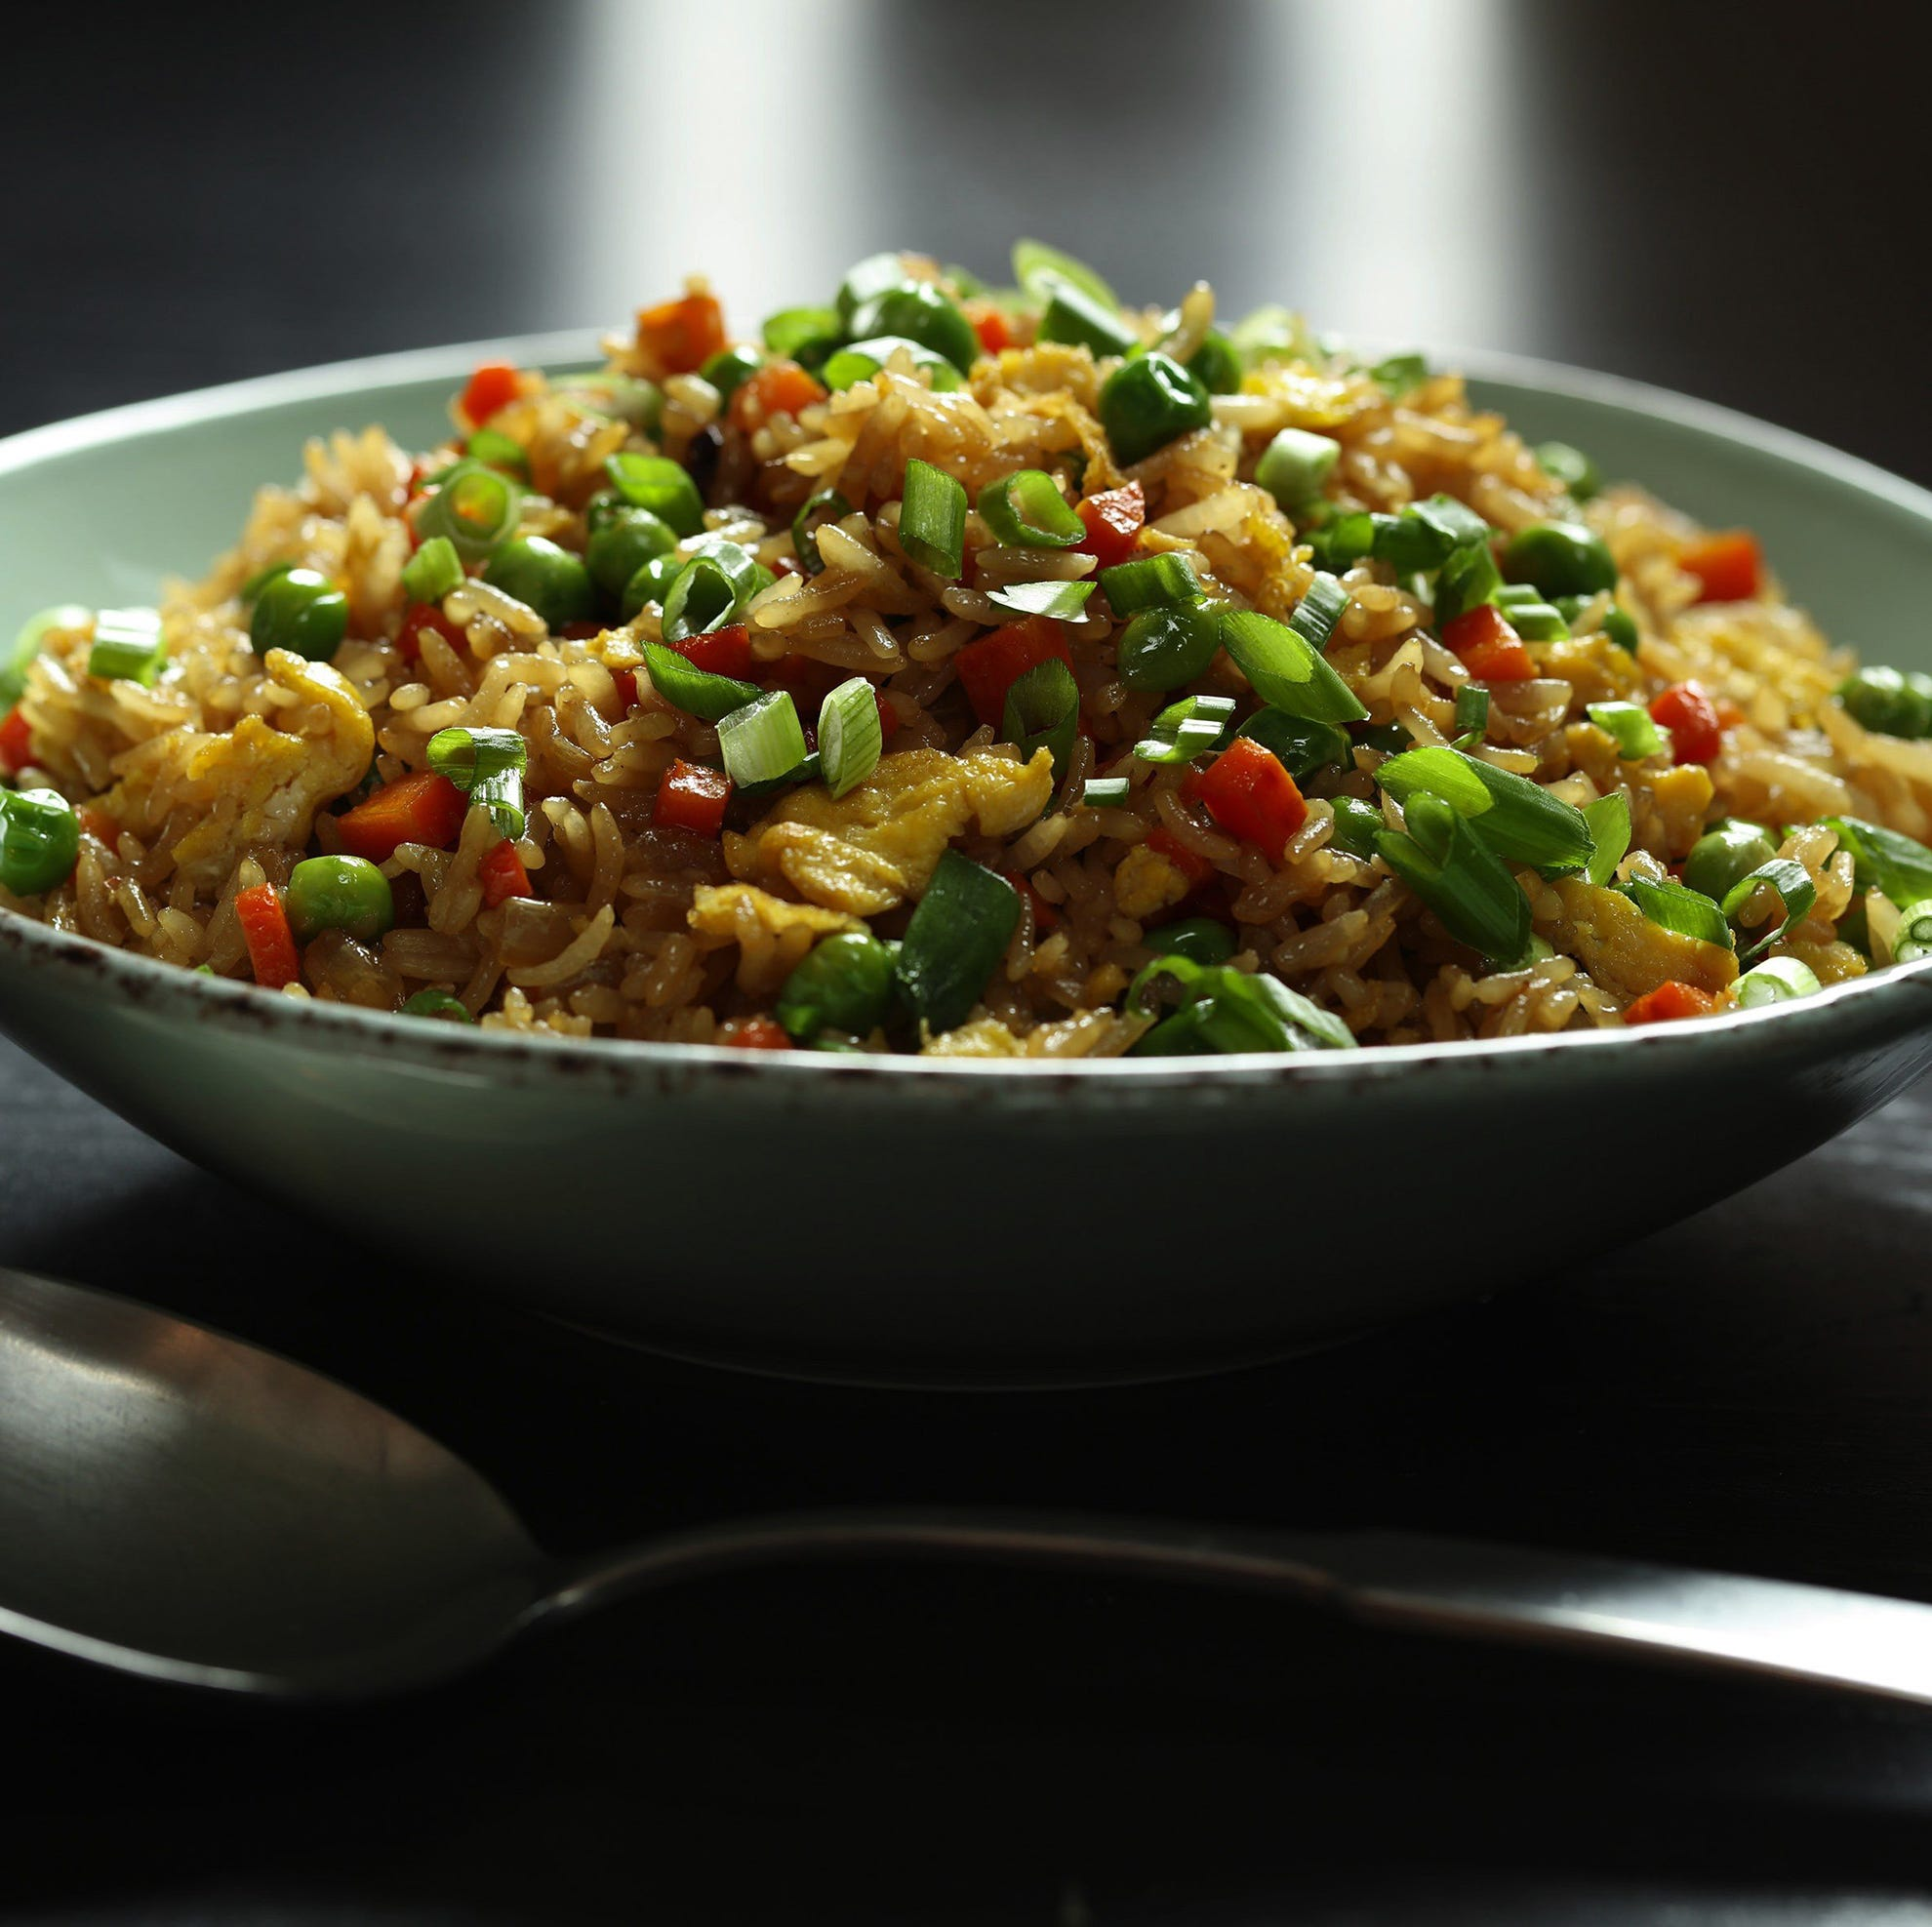 How to make fried rice that will make you forget it's leftovers